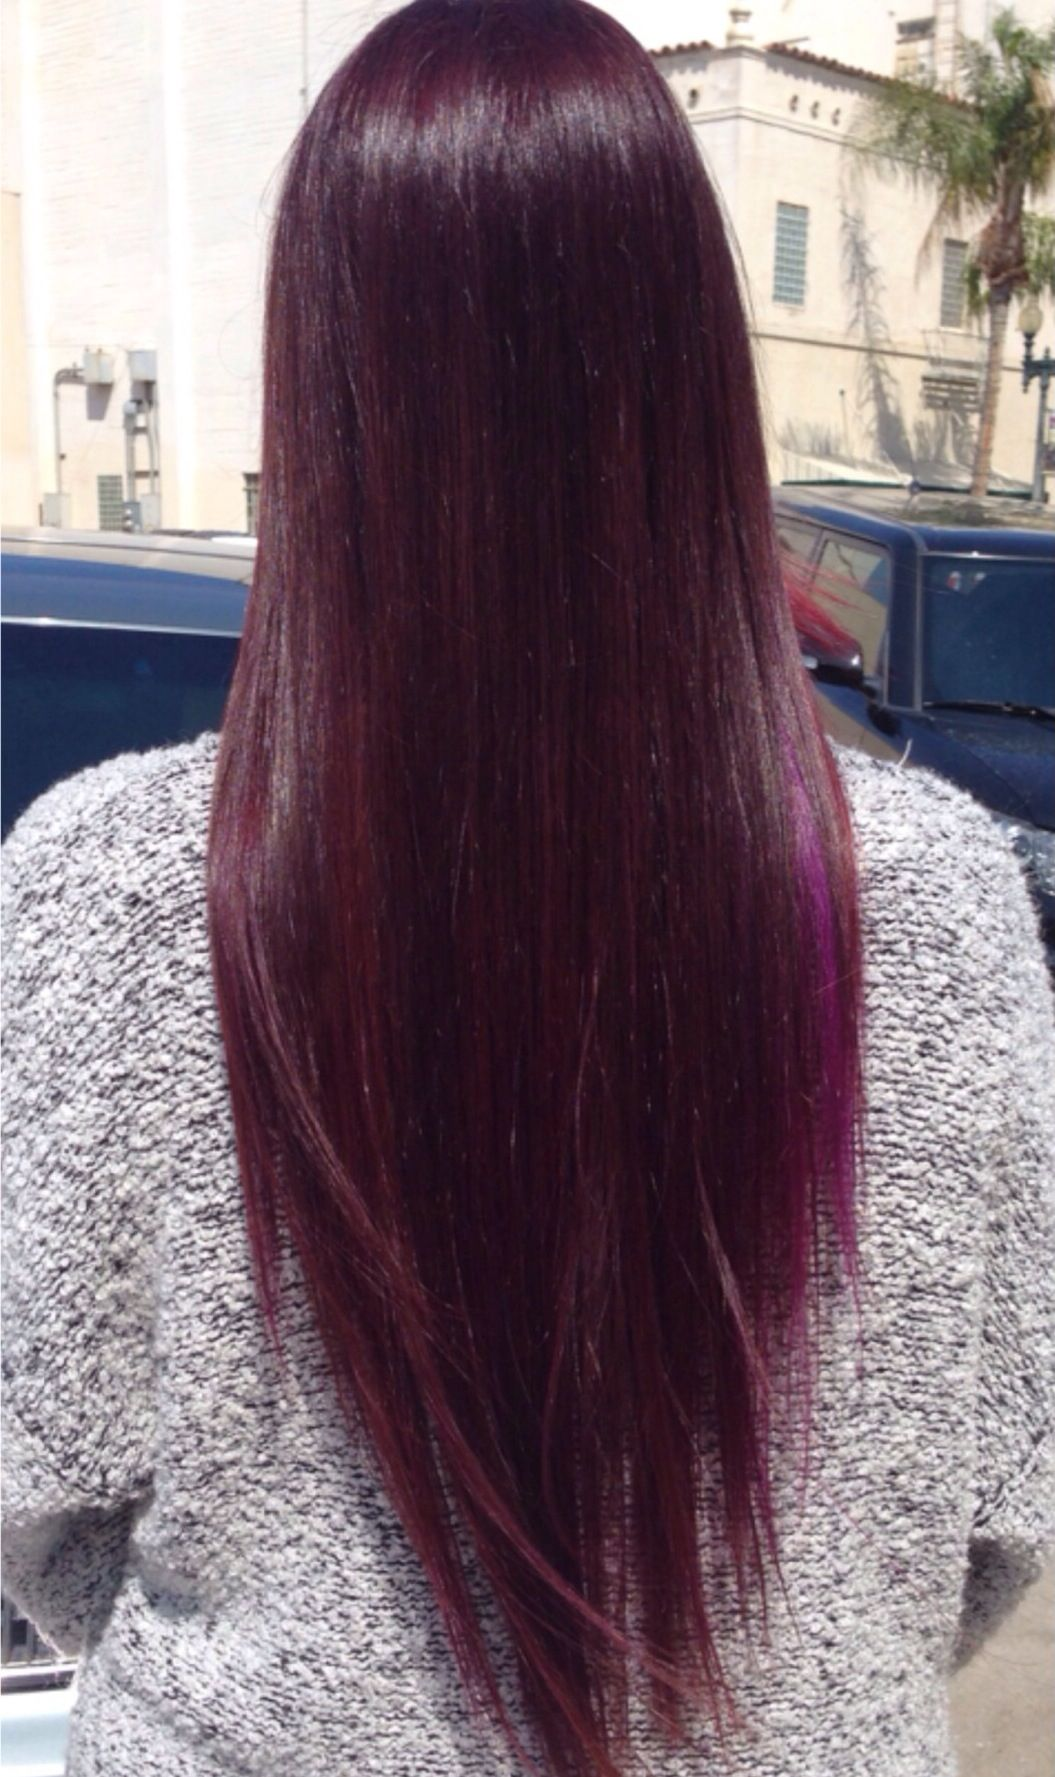 Dark violet hair using only joicous fv wild orchid fingers and